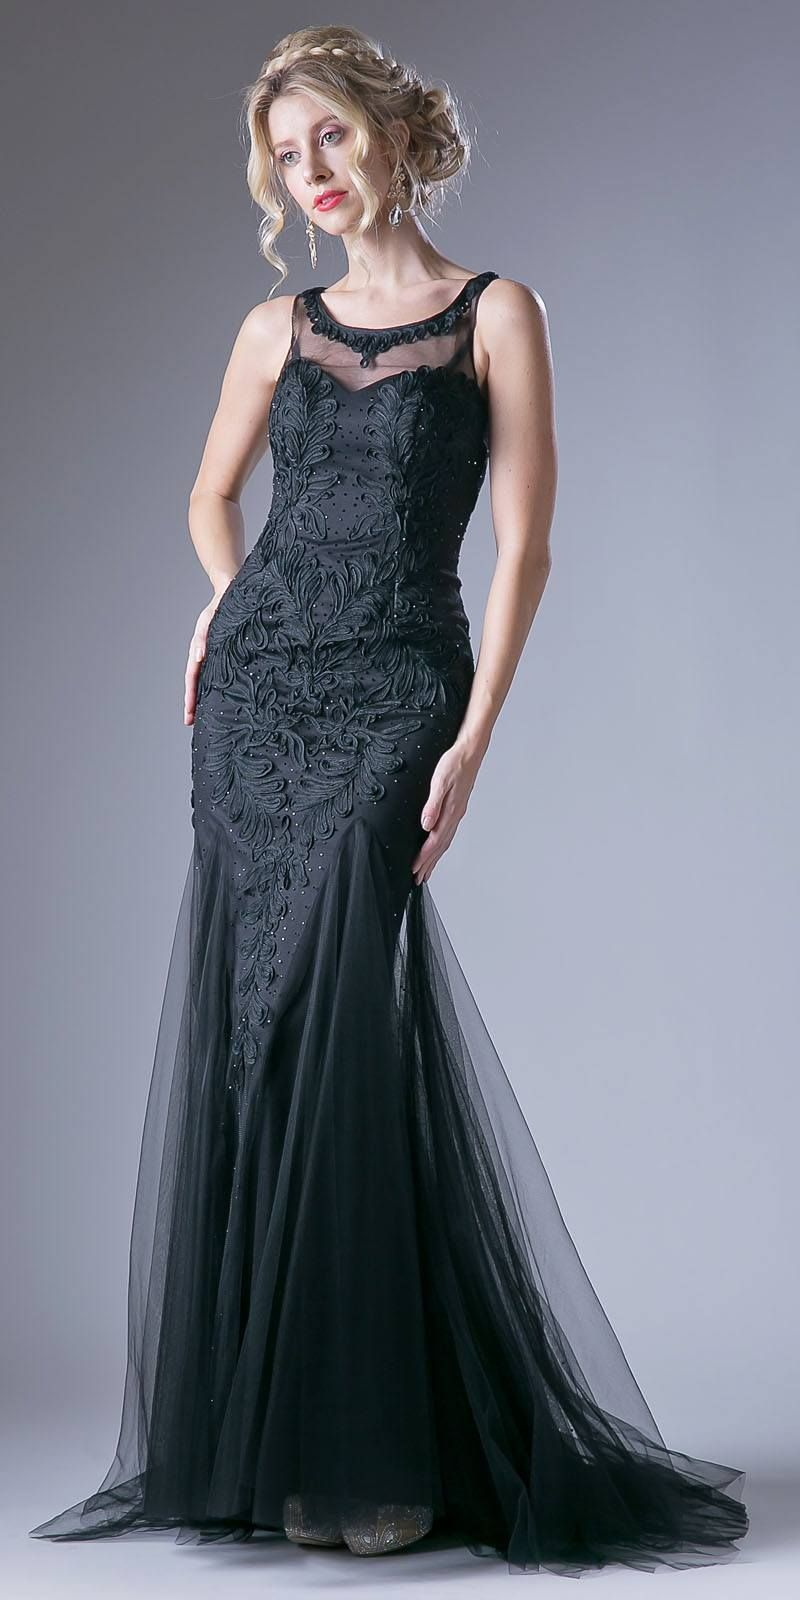 Black Illusion Sweetheart Neckline Cut Out Back Evening Gown ...